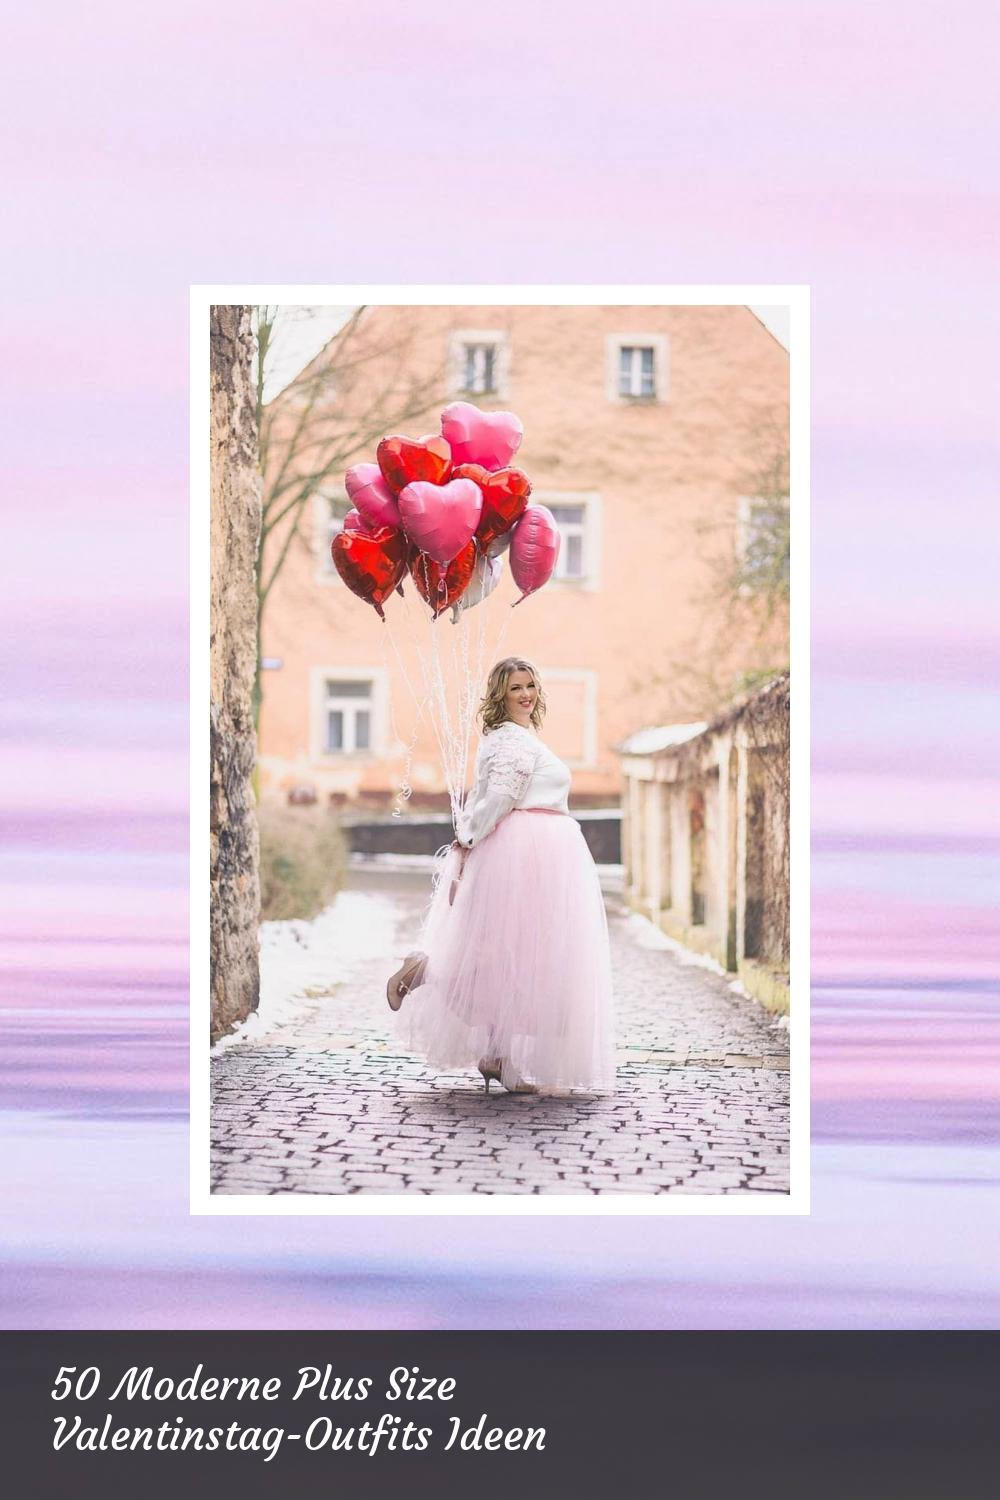 50 Moderne Plus Size Valentinstag-Outfits Ideen 46